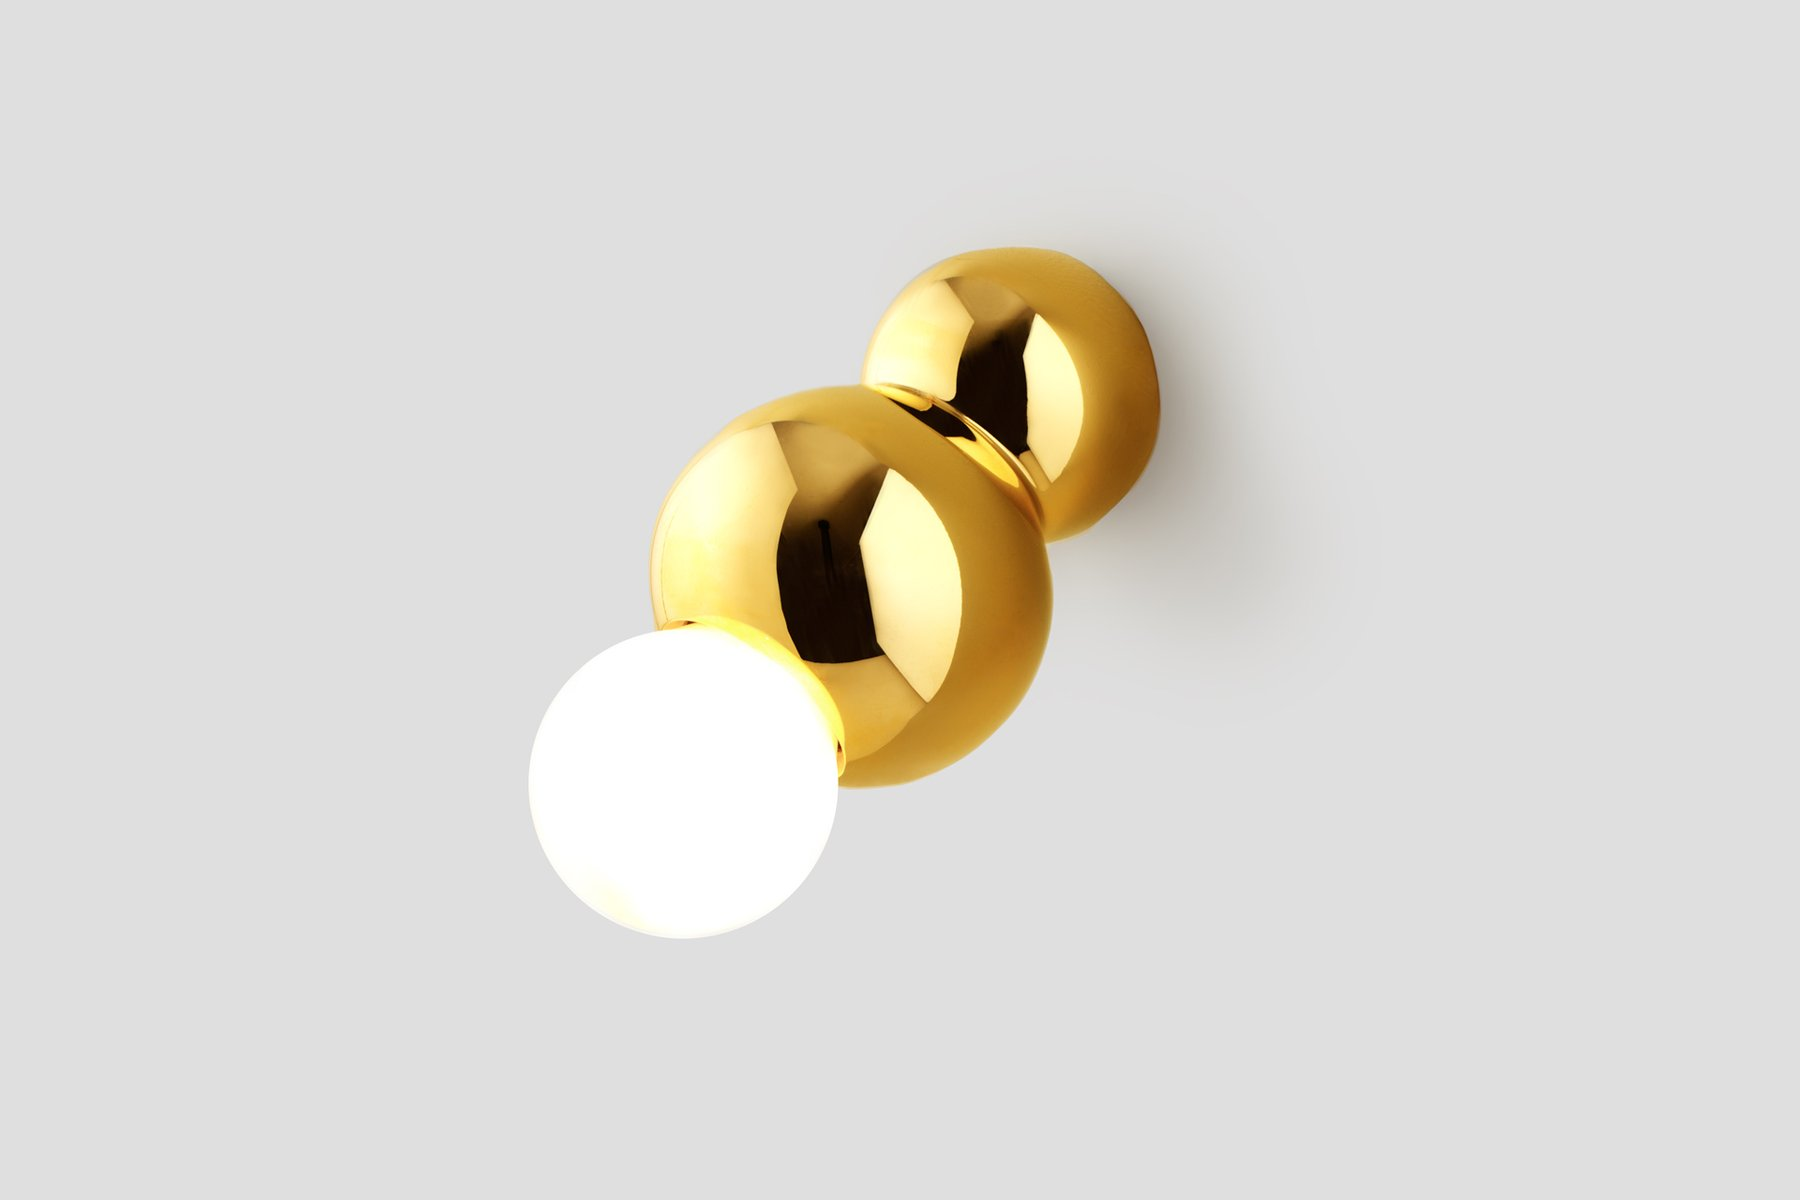 Wandmontierte Ball Light Lampe aus Messing von Michael Anastassiades